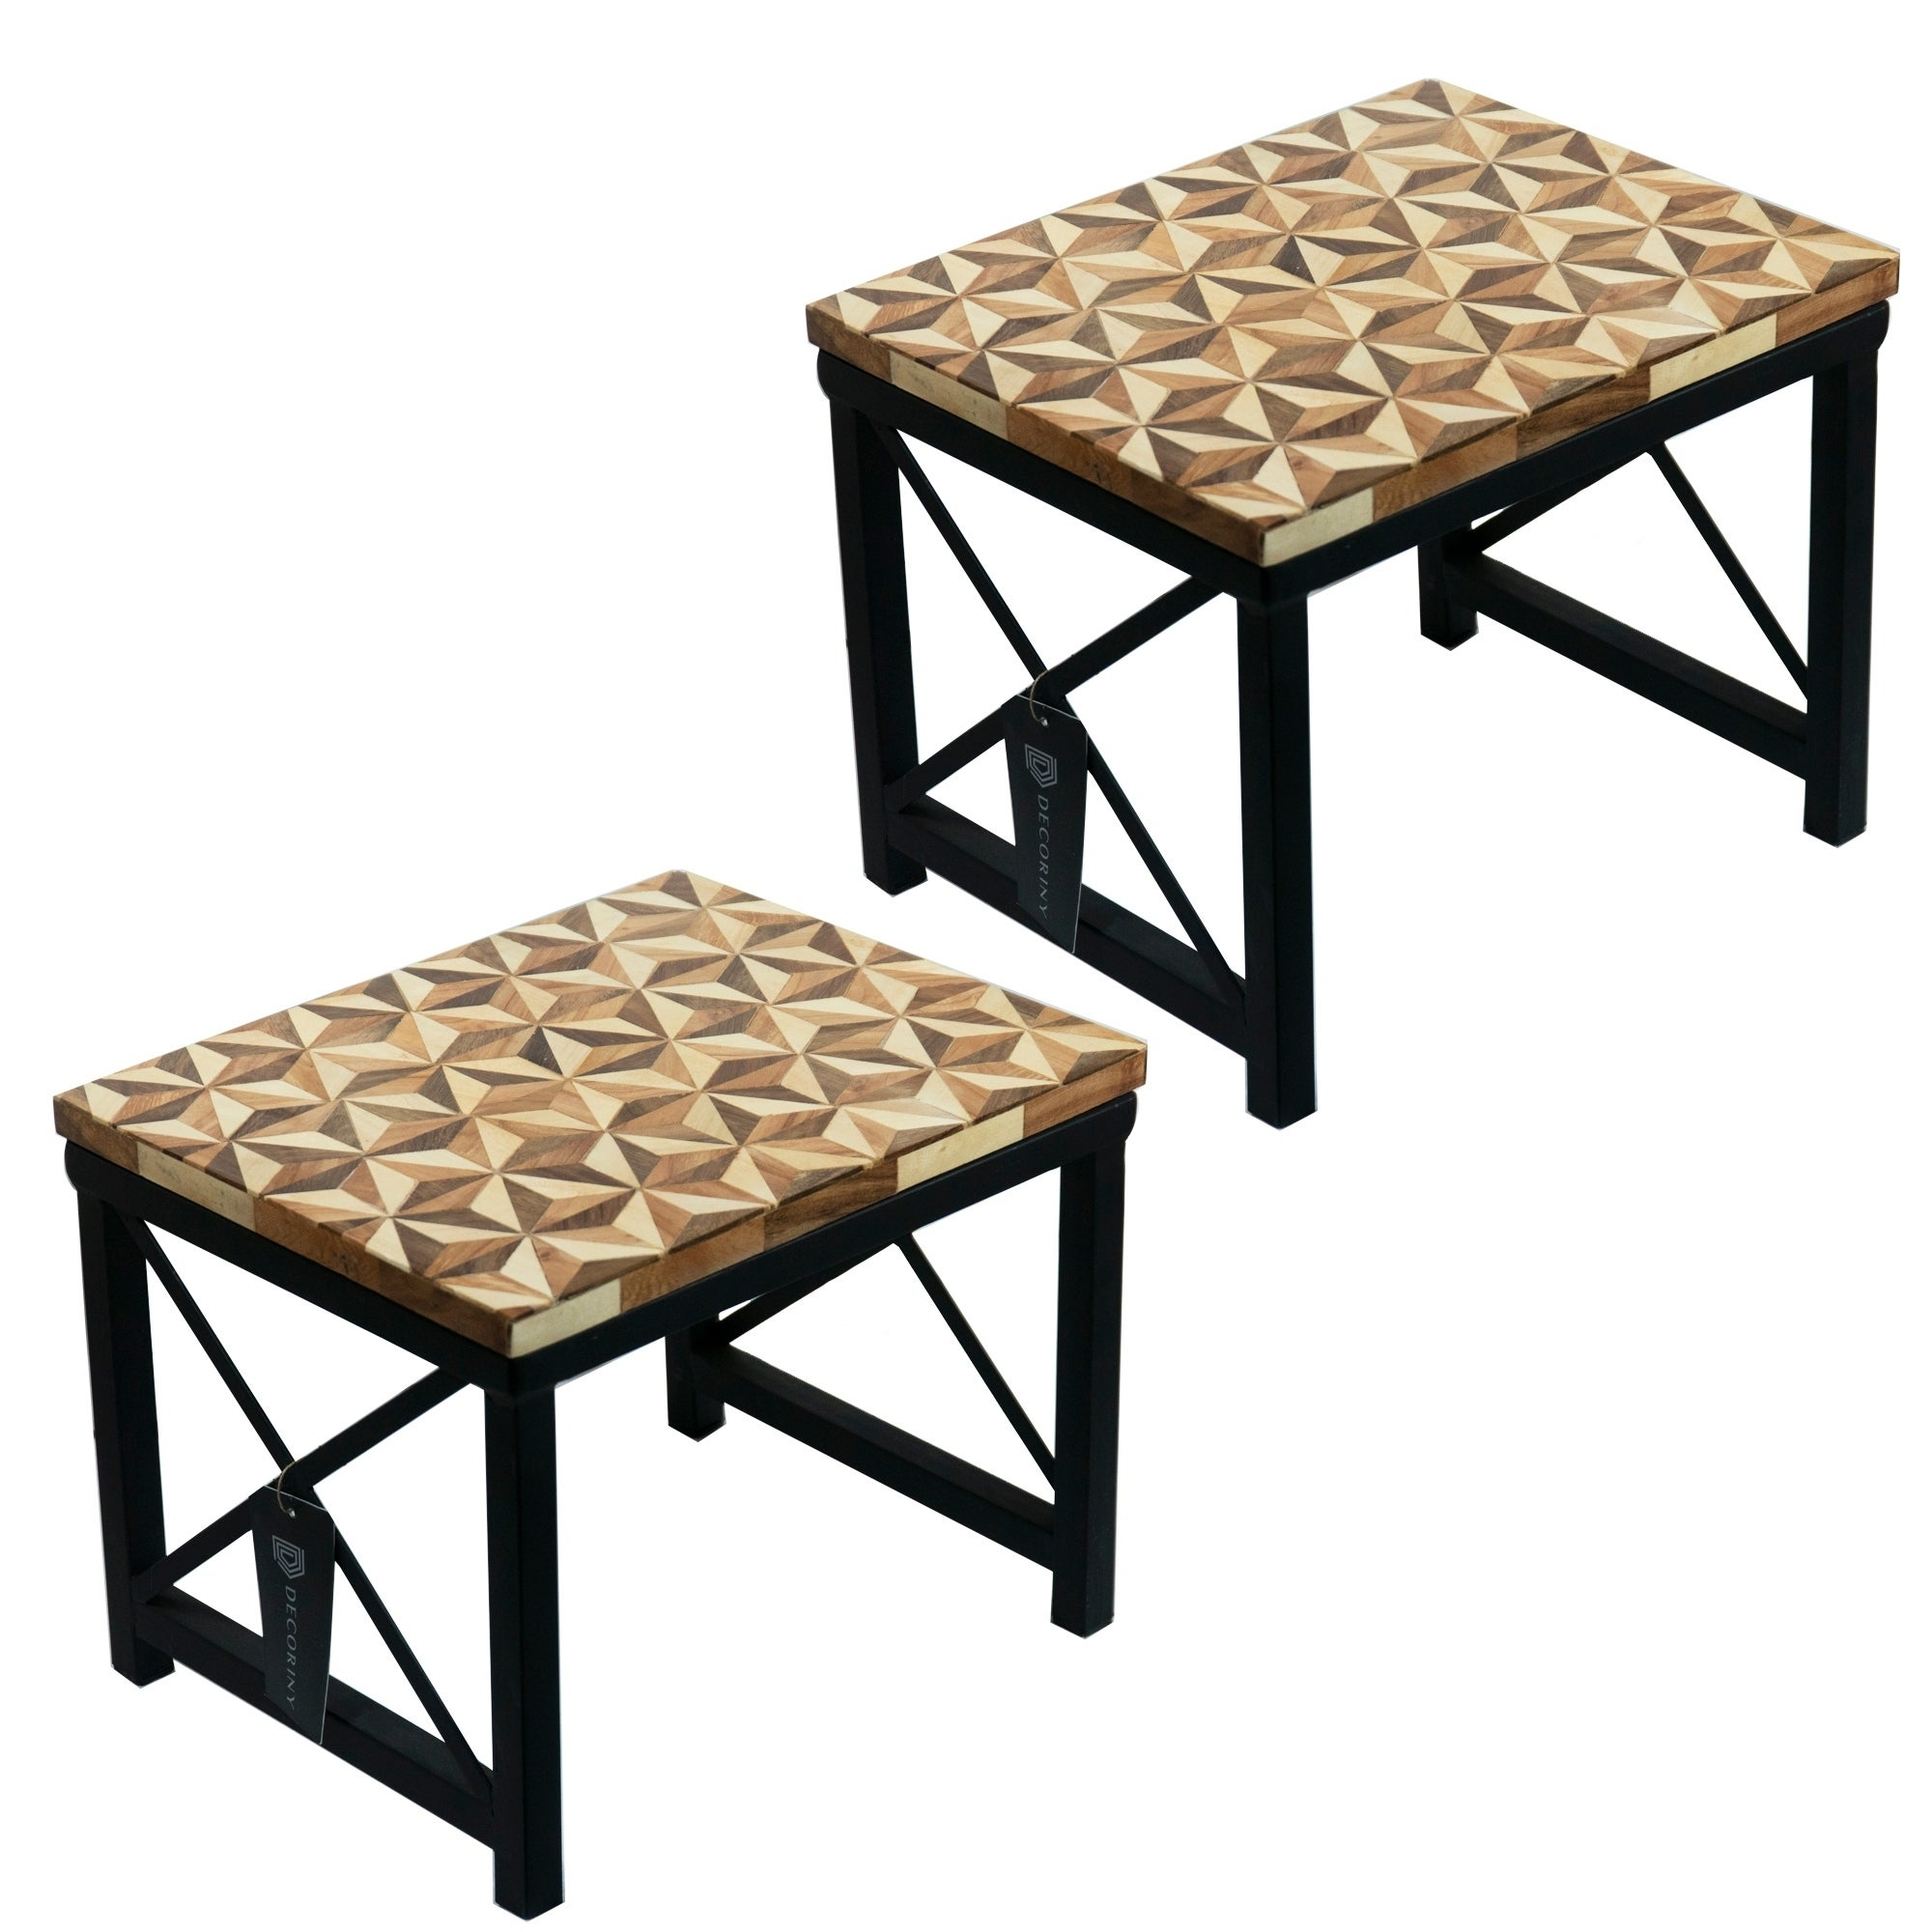 Incredible Porch Den Cody Premium Quality Handmade Step Stool Set Of 2 Alphanode Cool Chair Designs And Ideas Alphanodeonline